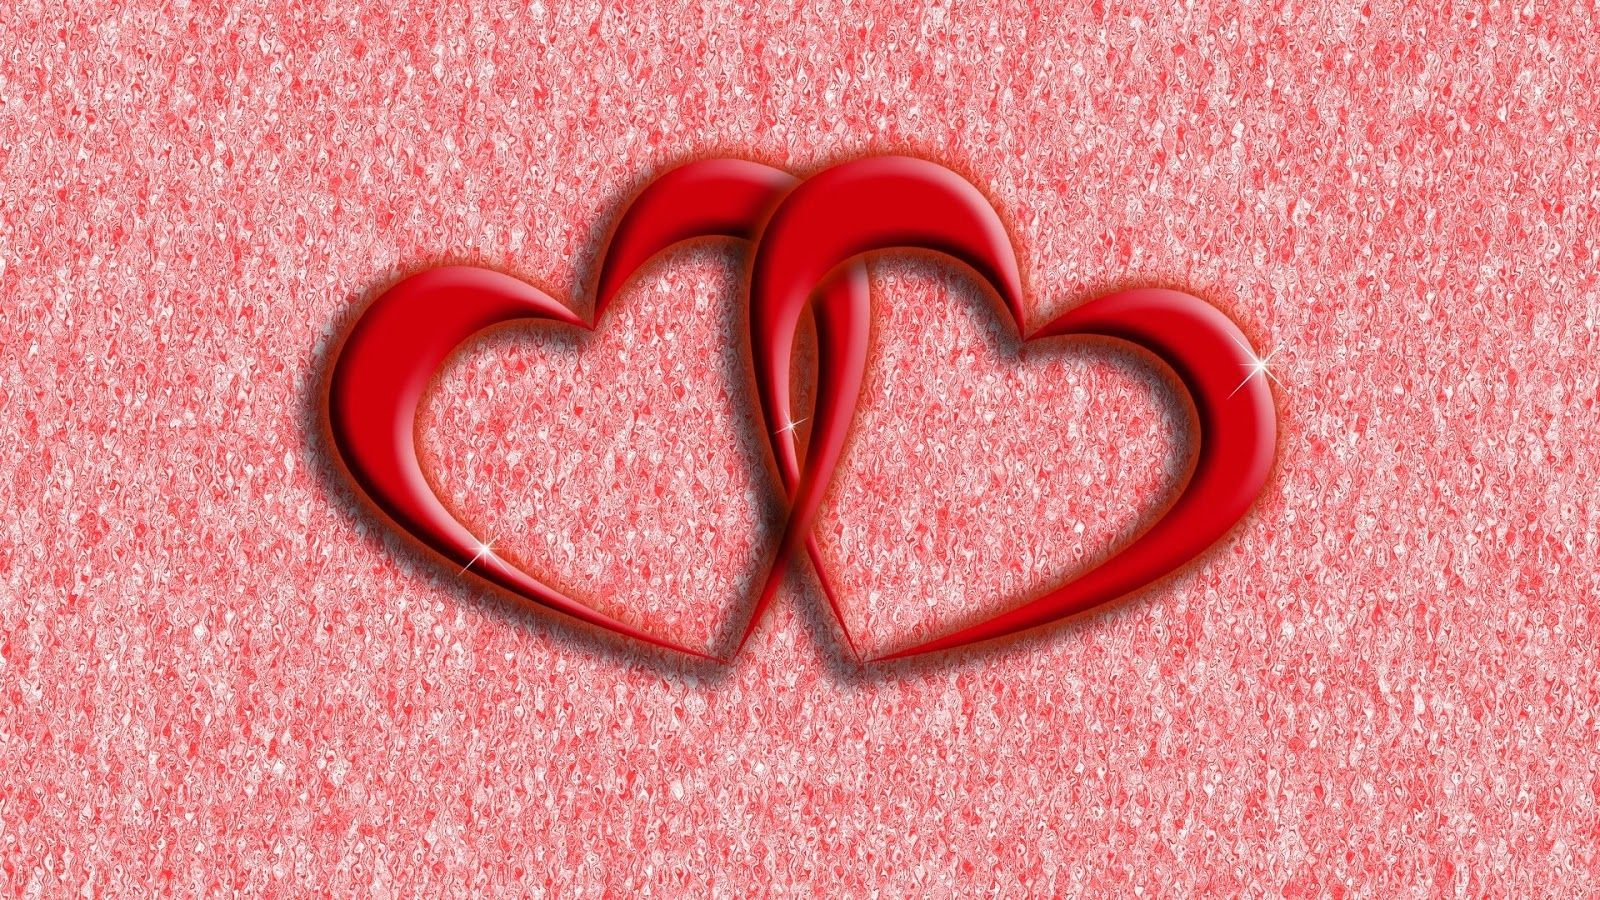 RED CRYSTAL LOVE HEARTS Love Wallpaper 1600x900 Heart 52 Wallpapers